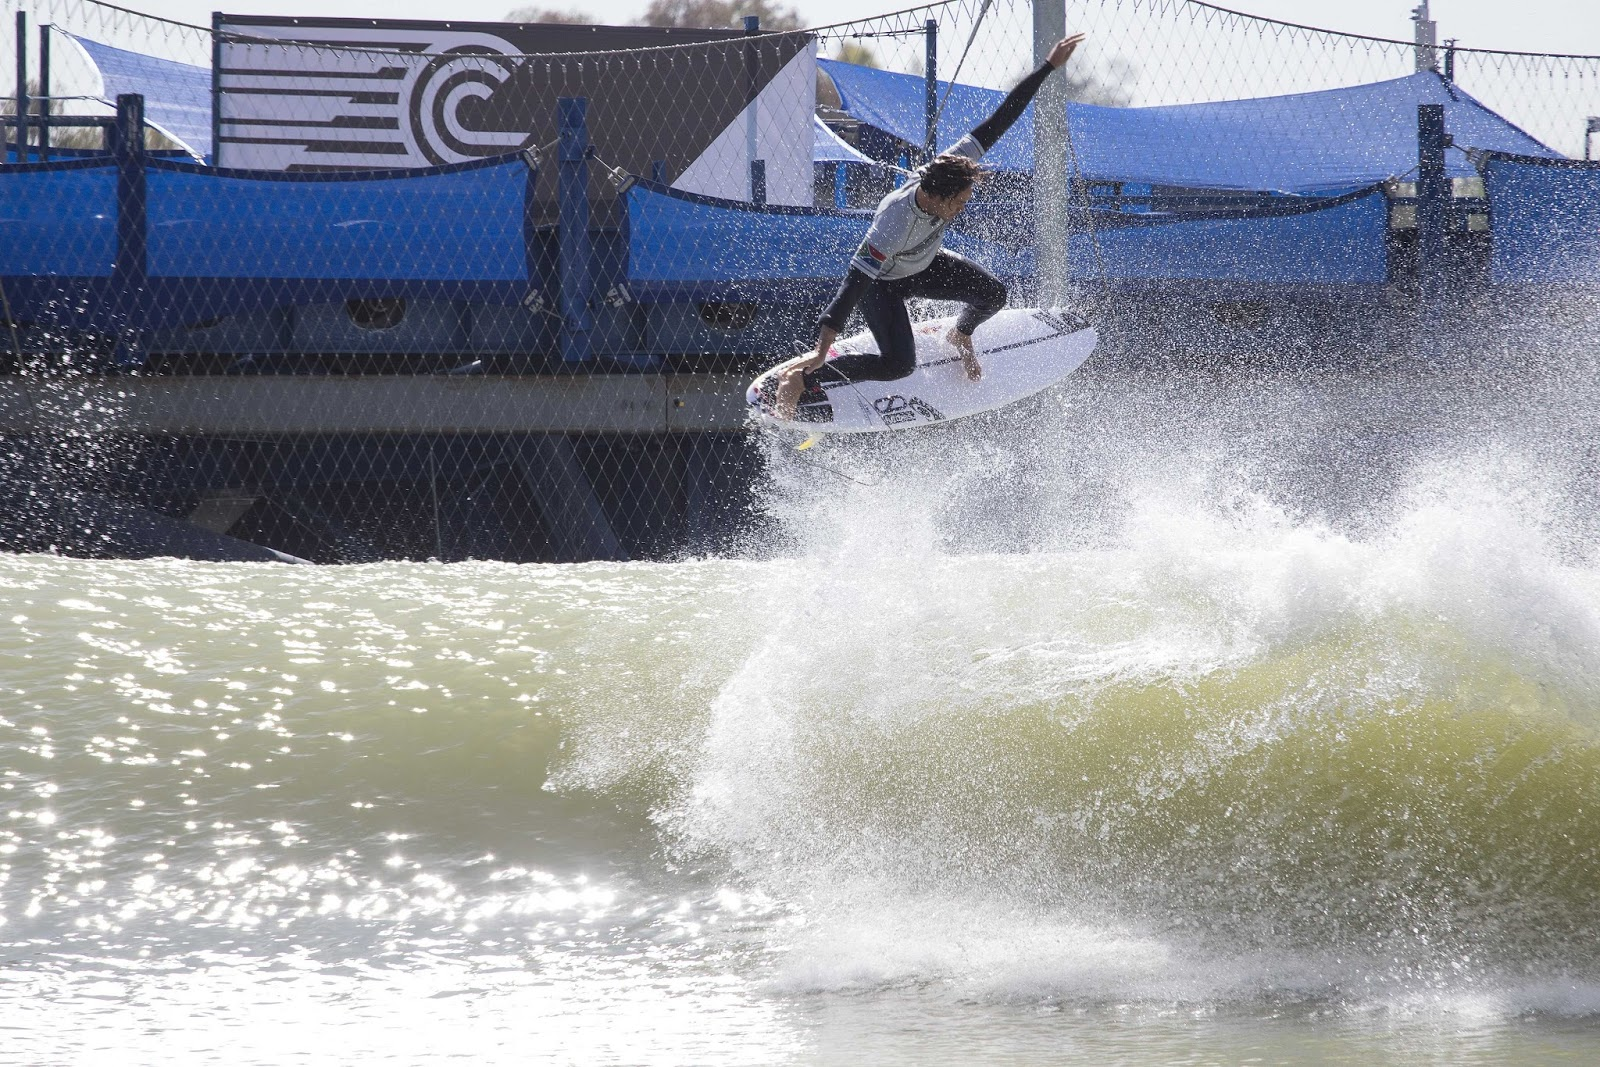 founders cup surf